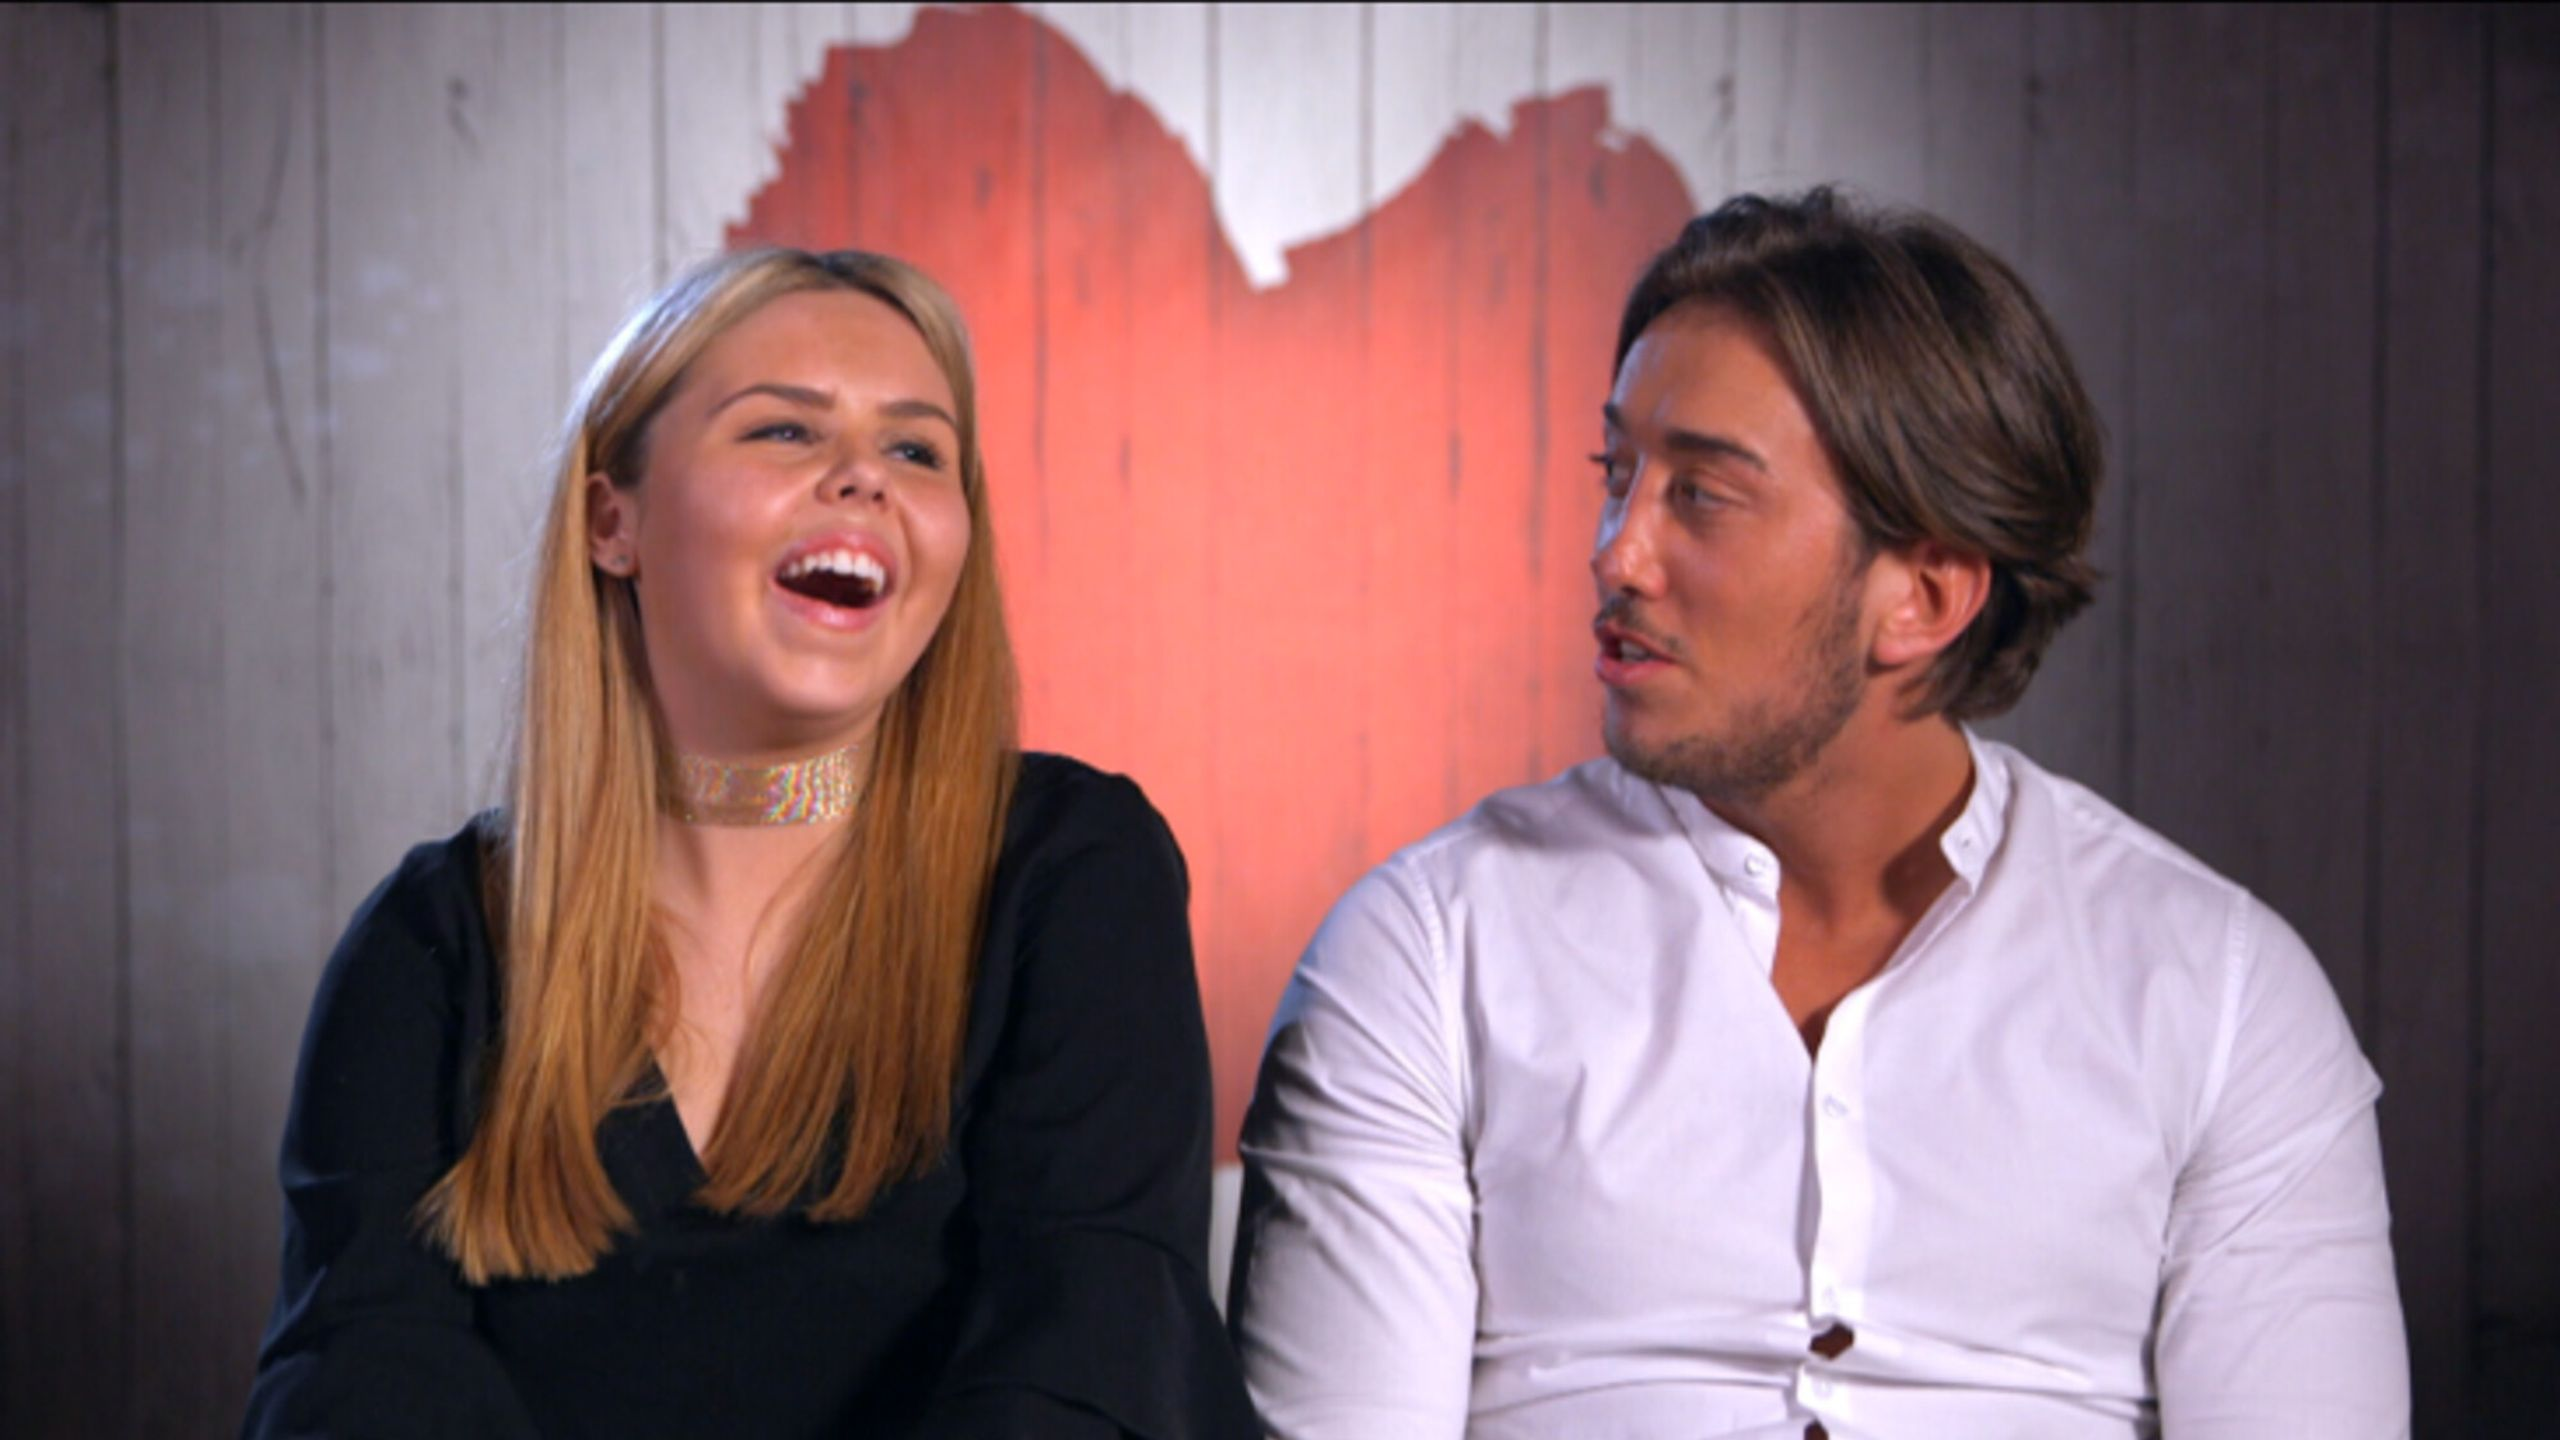 First Dates Seizoen 18 Afl. 11 - Aflevering 11